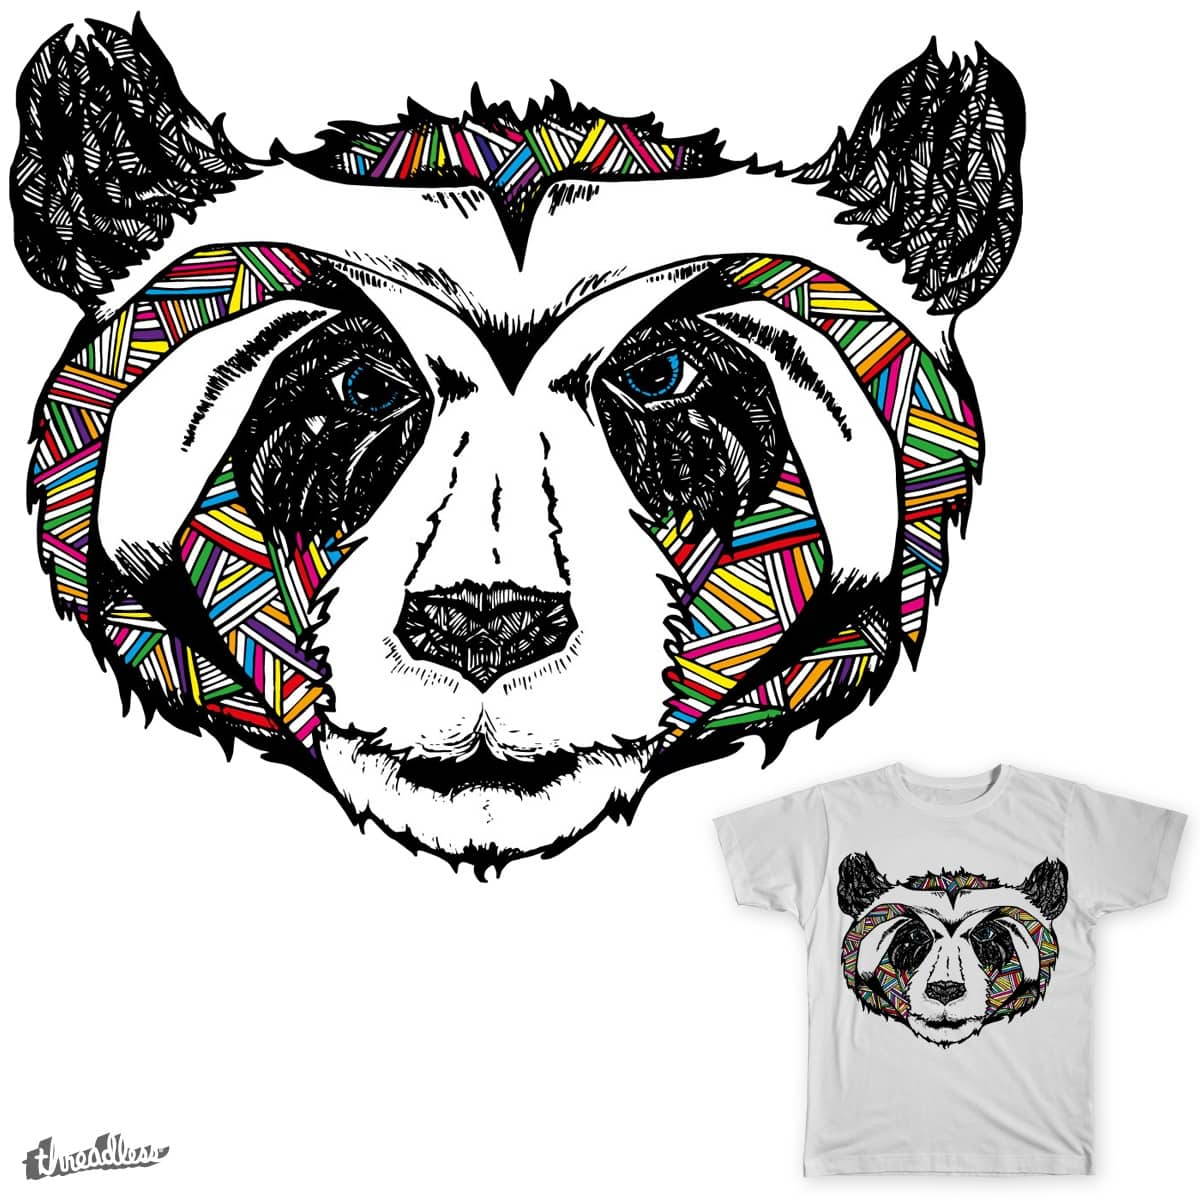 Party Panda by bbutterfield on Threadless